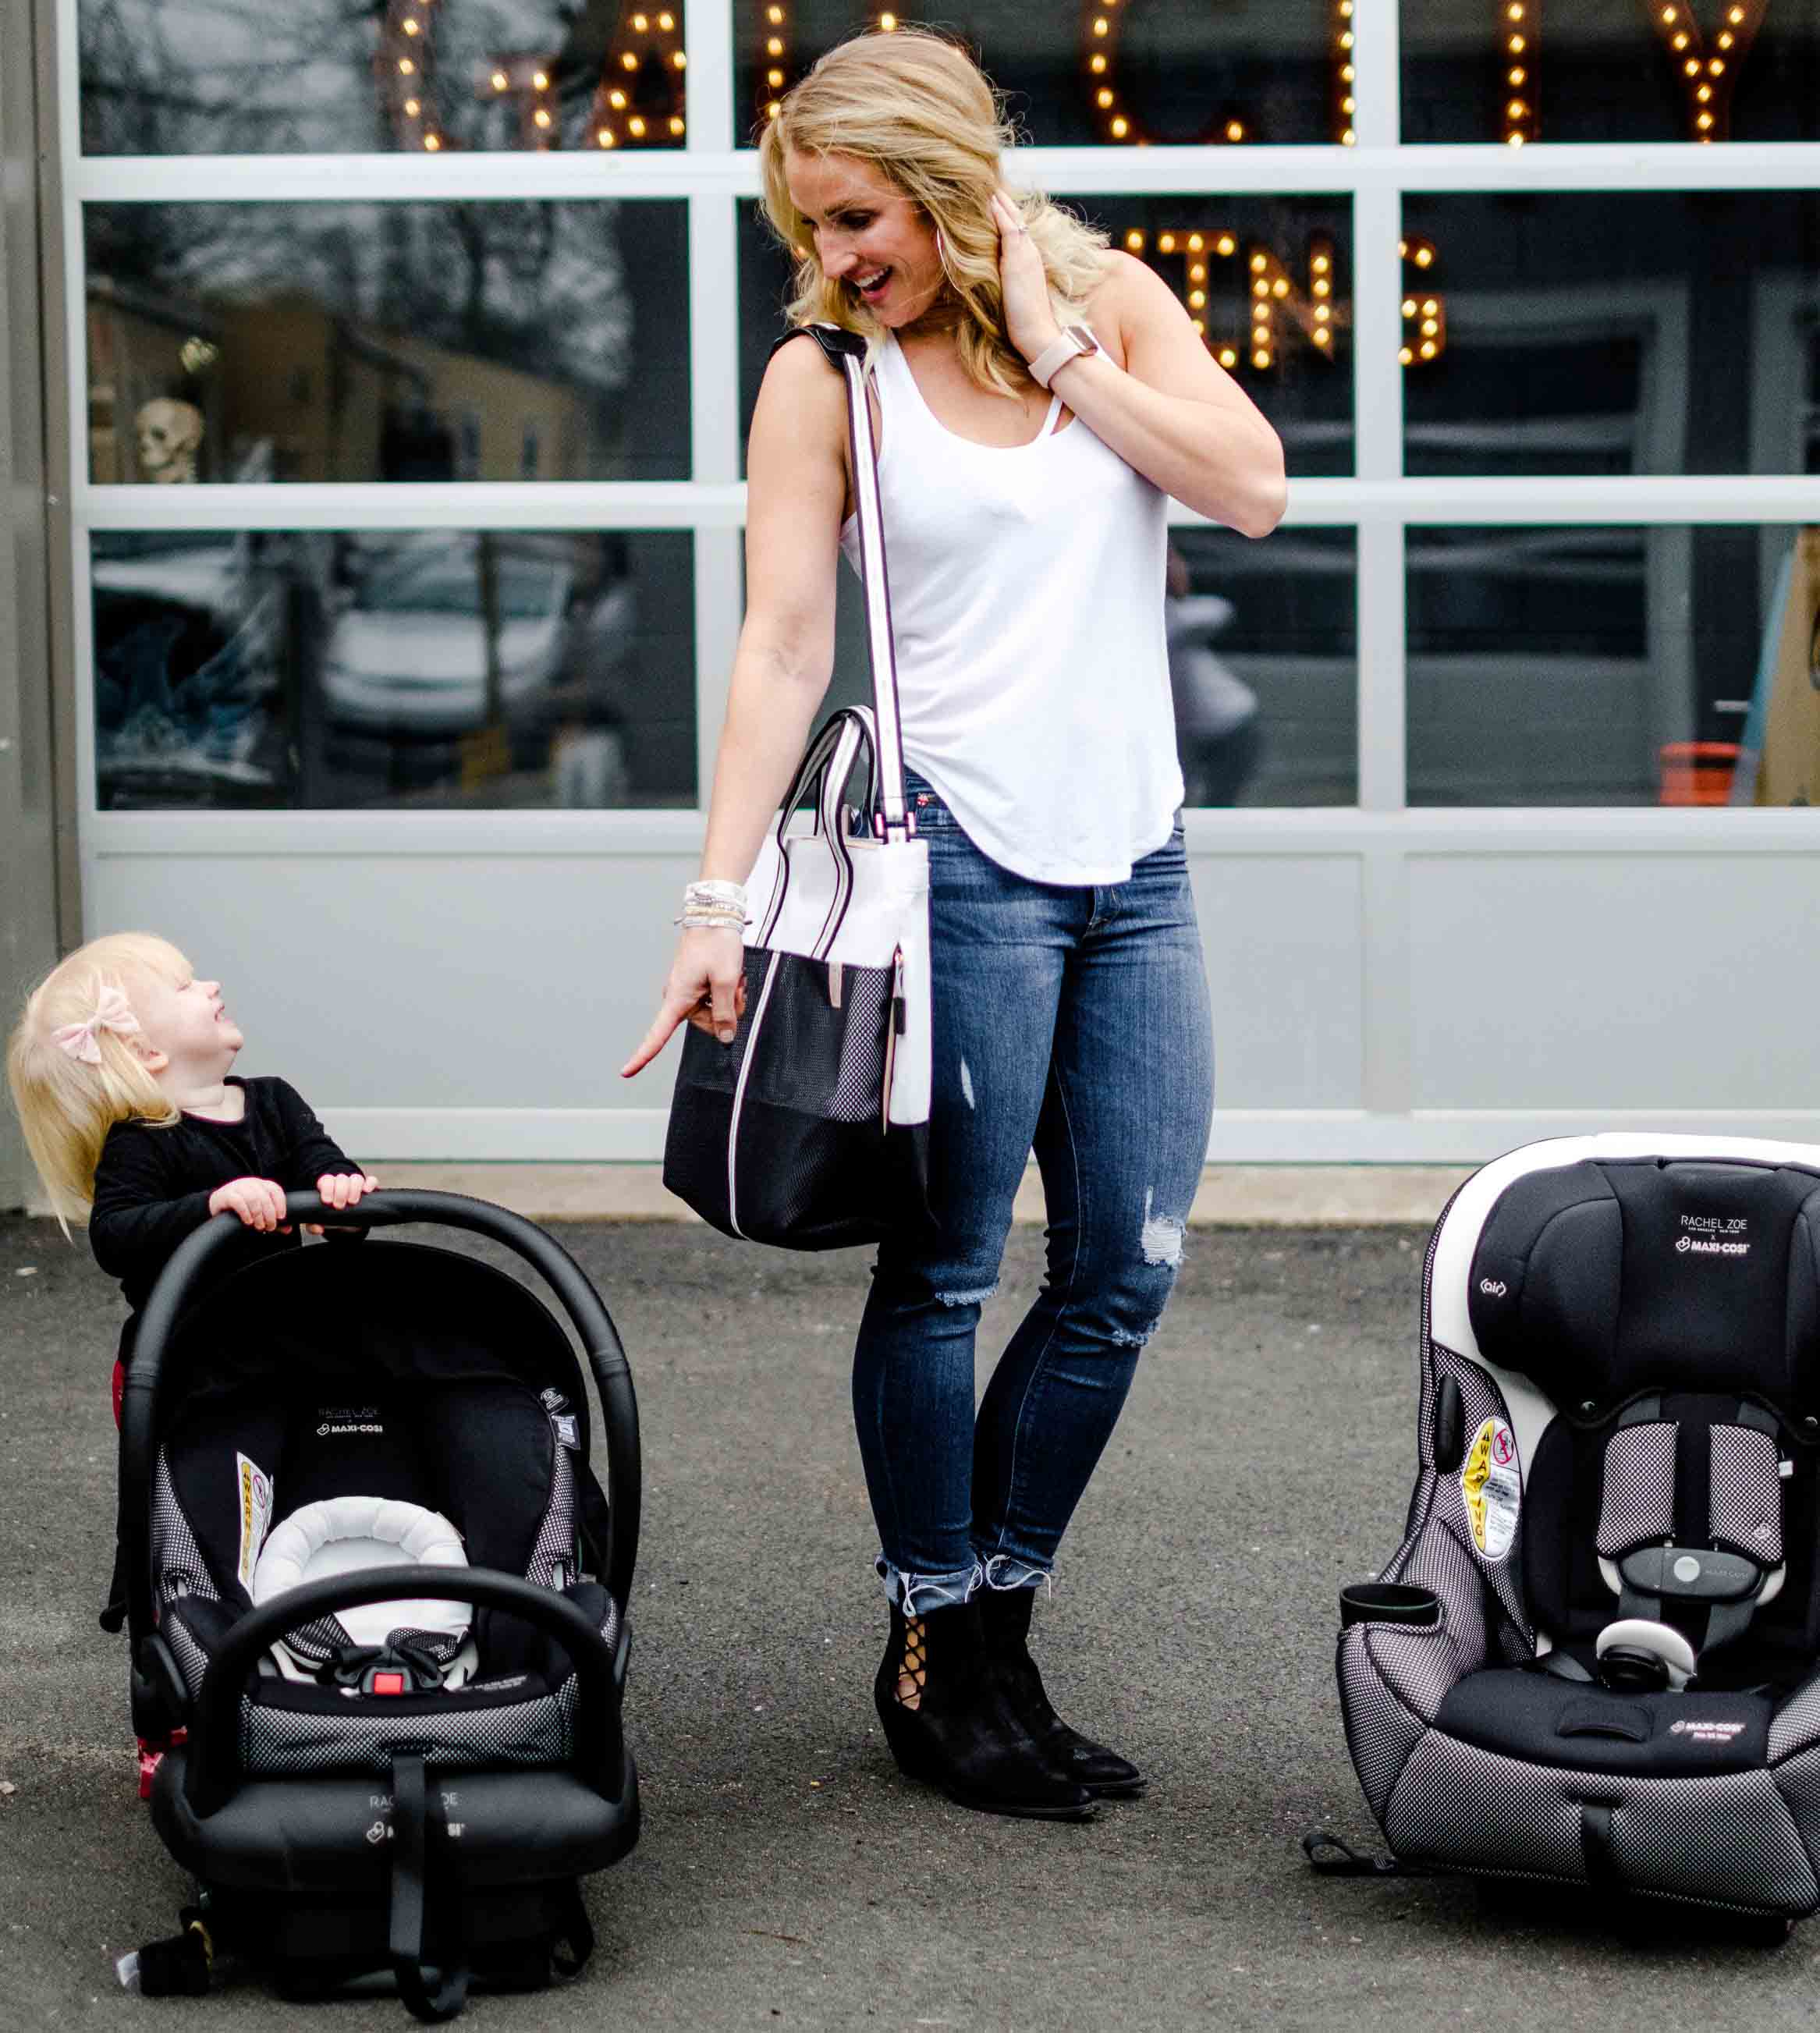 Maxi-Cosi x Rachel Zoe Collection by popular Atlanta lifestyle blogger Happily Hughes